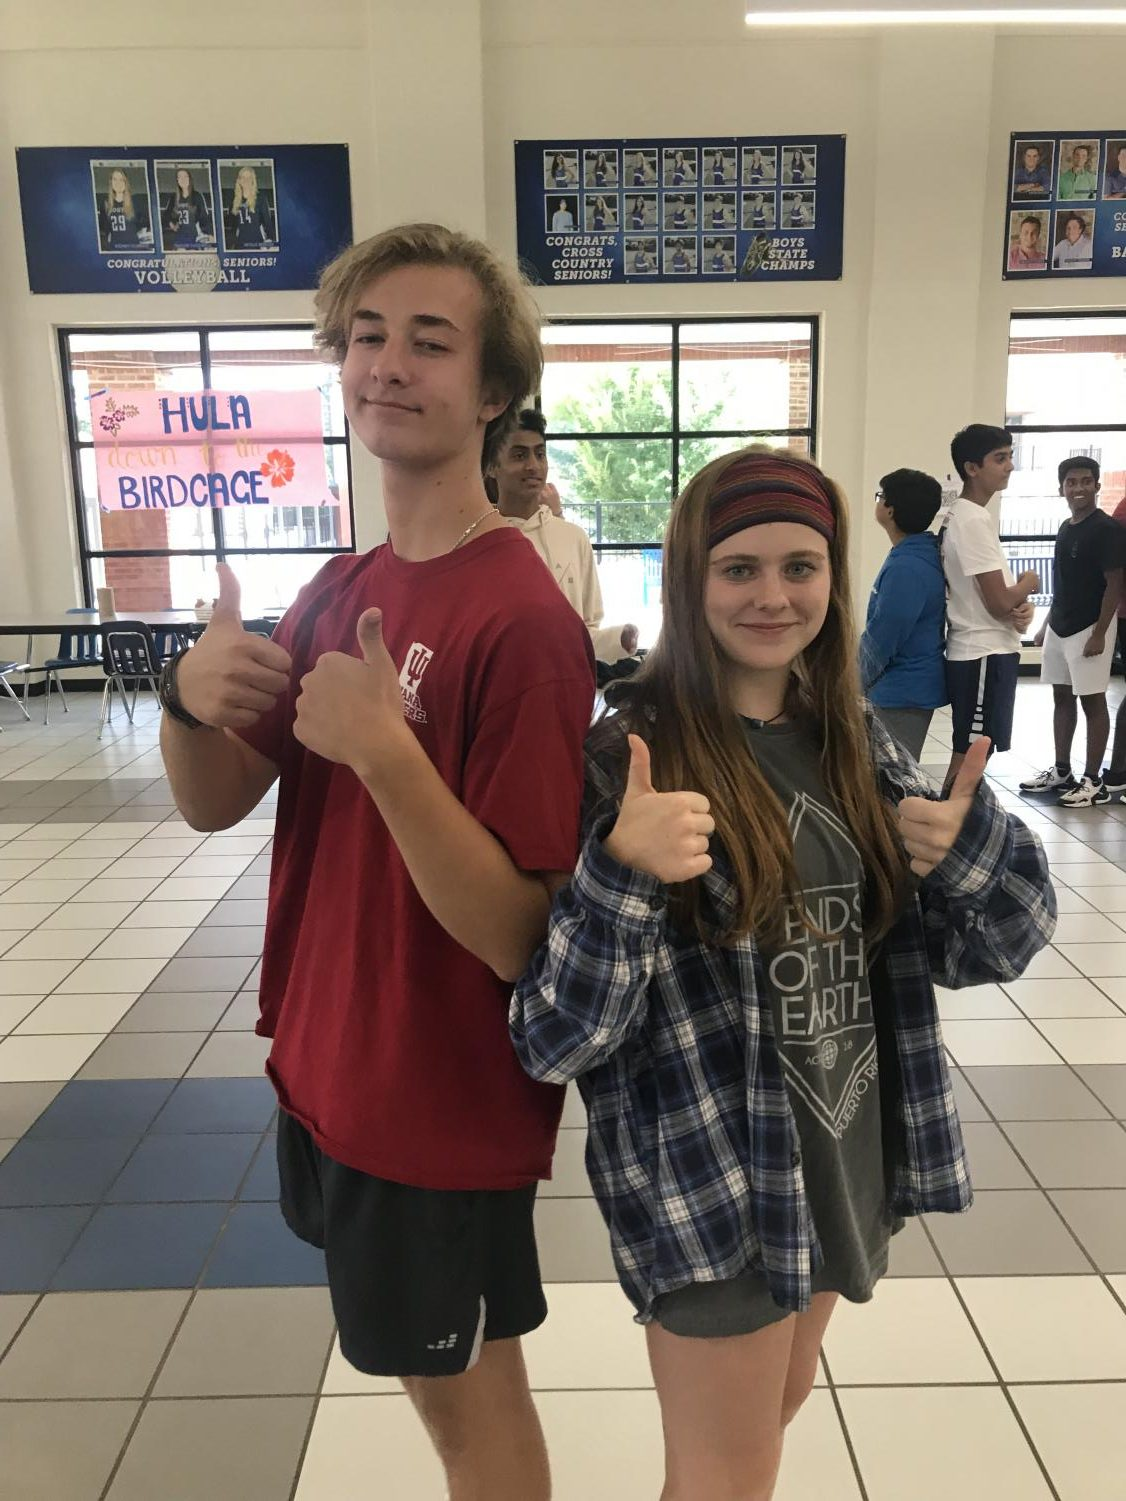 Getting to know your peers. The students pictured (Adam Strandquist, Susanna Yonk) greeted each other before they played a round of 'Gun, Man, Gorilla.'  This game was meant to ease the air for students, and help FBLA members get to know each other while having some fun.